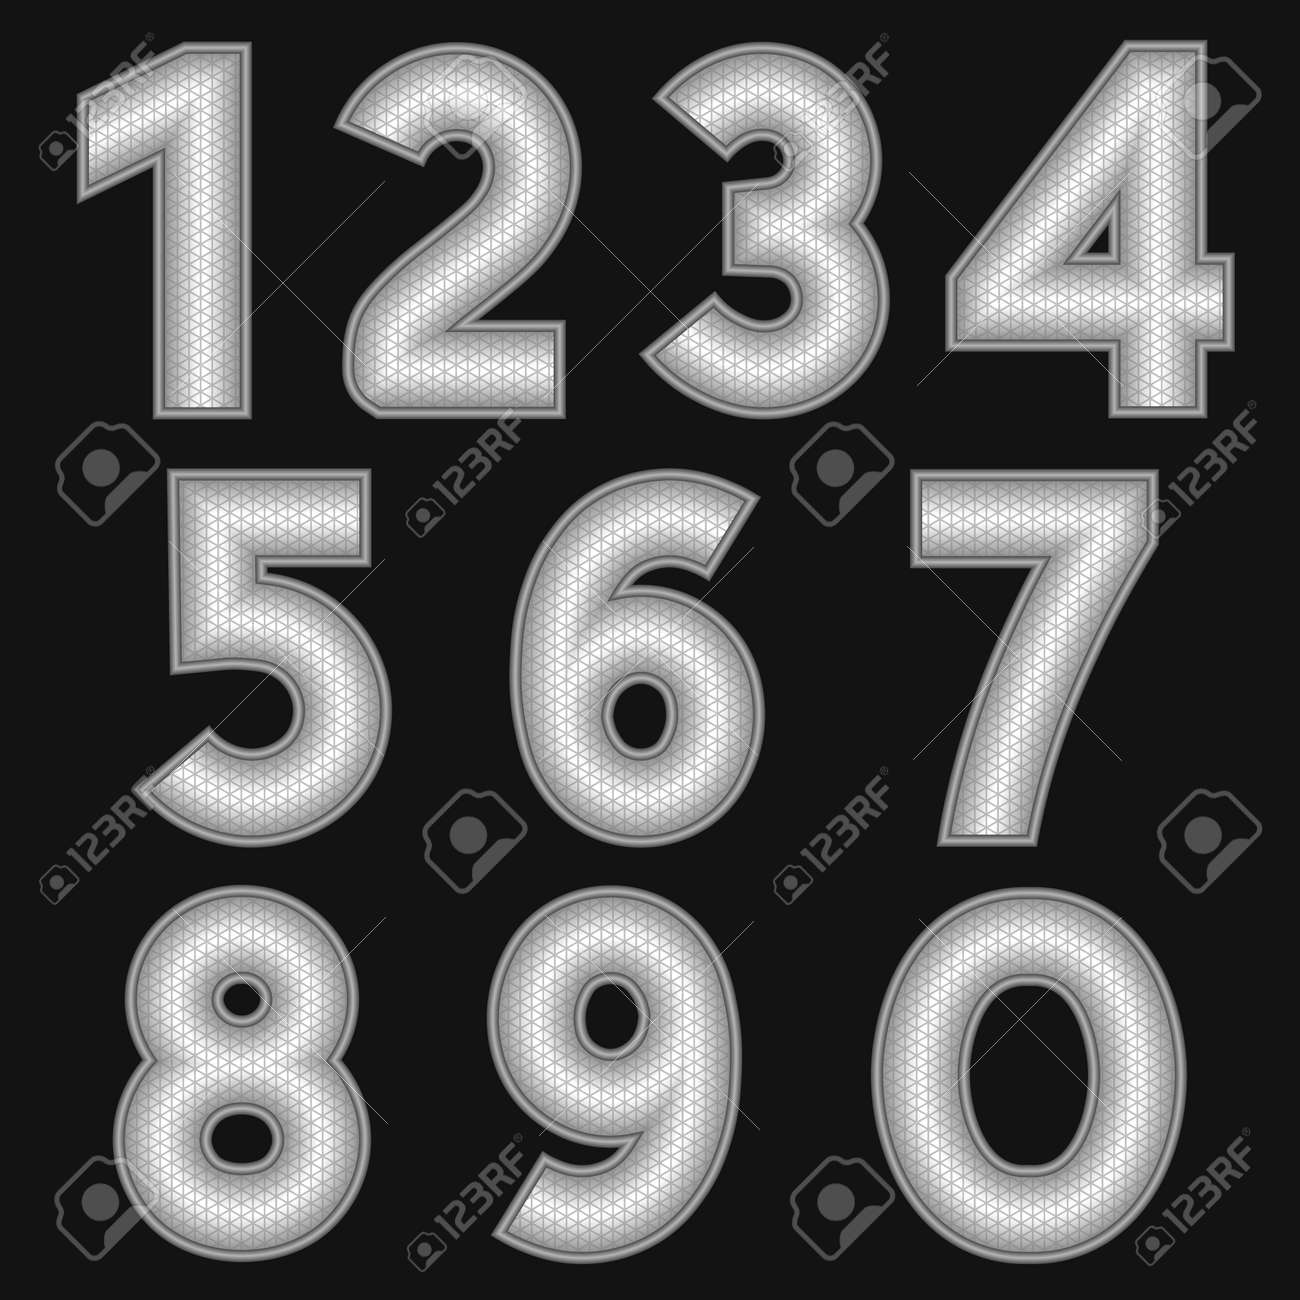 Thin Metal Letters A Complete Set Of Metal Numbers With A Relief Surfacethe Edges